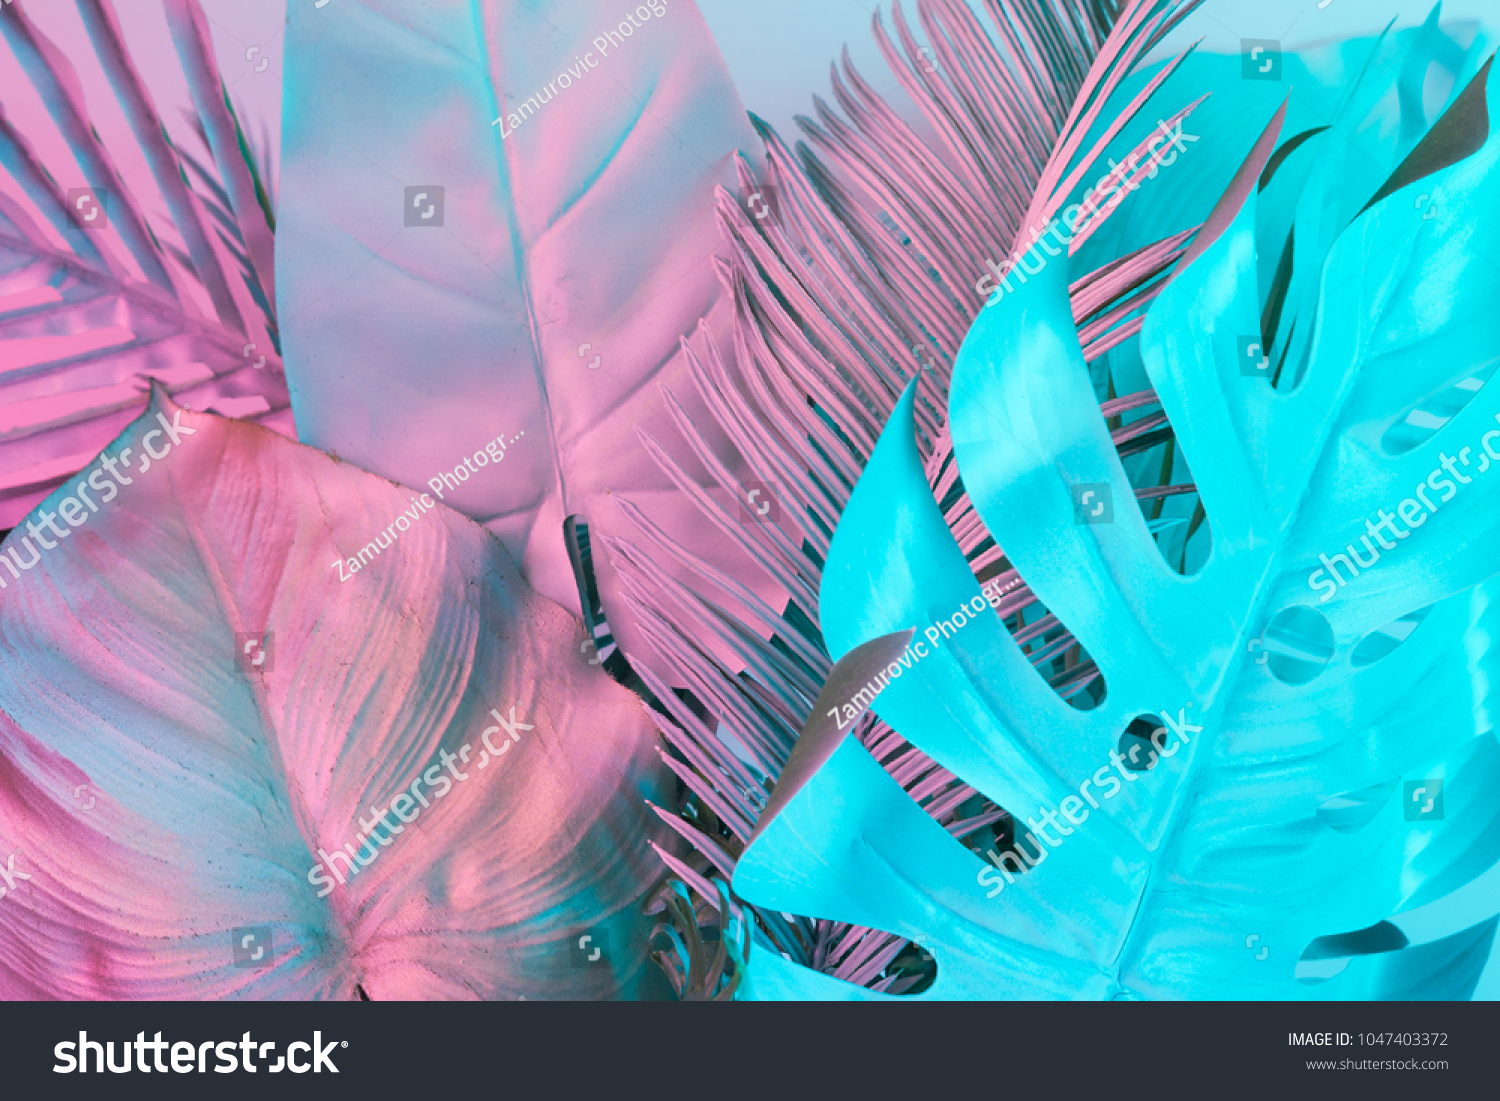 Tropical and palm leaves in vibrant bold gradient holographic colors. Concept art. Minimal surrealism. #1047403372